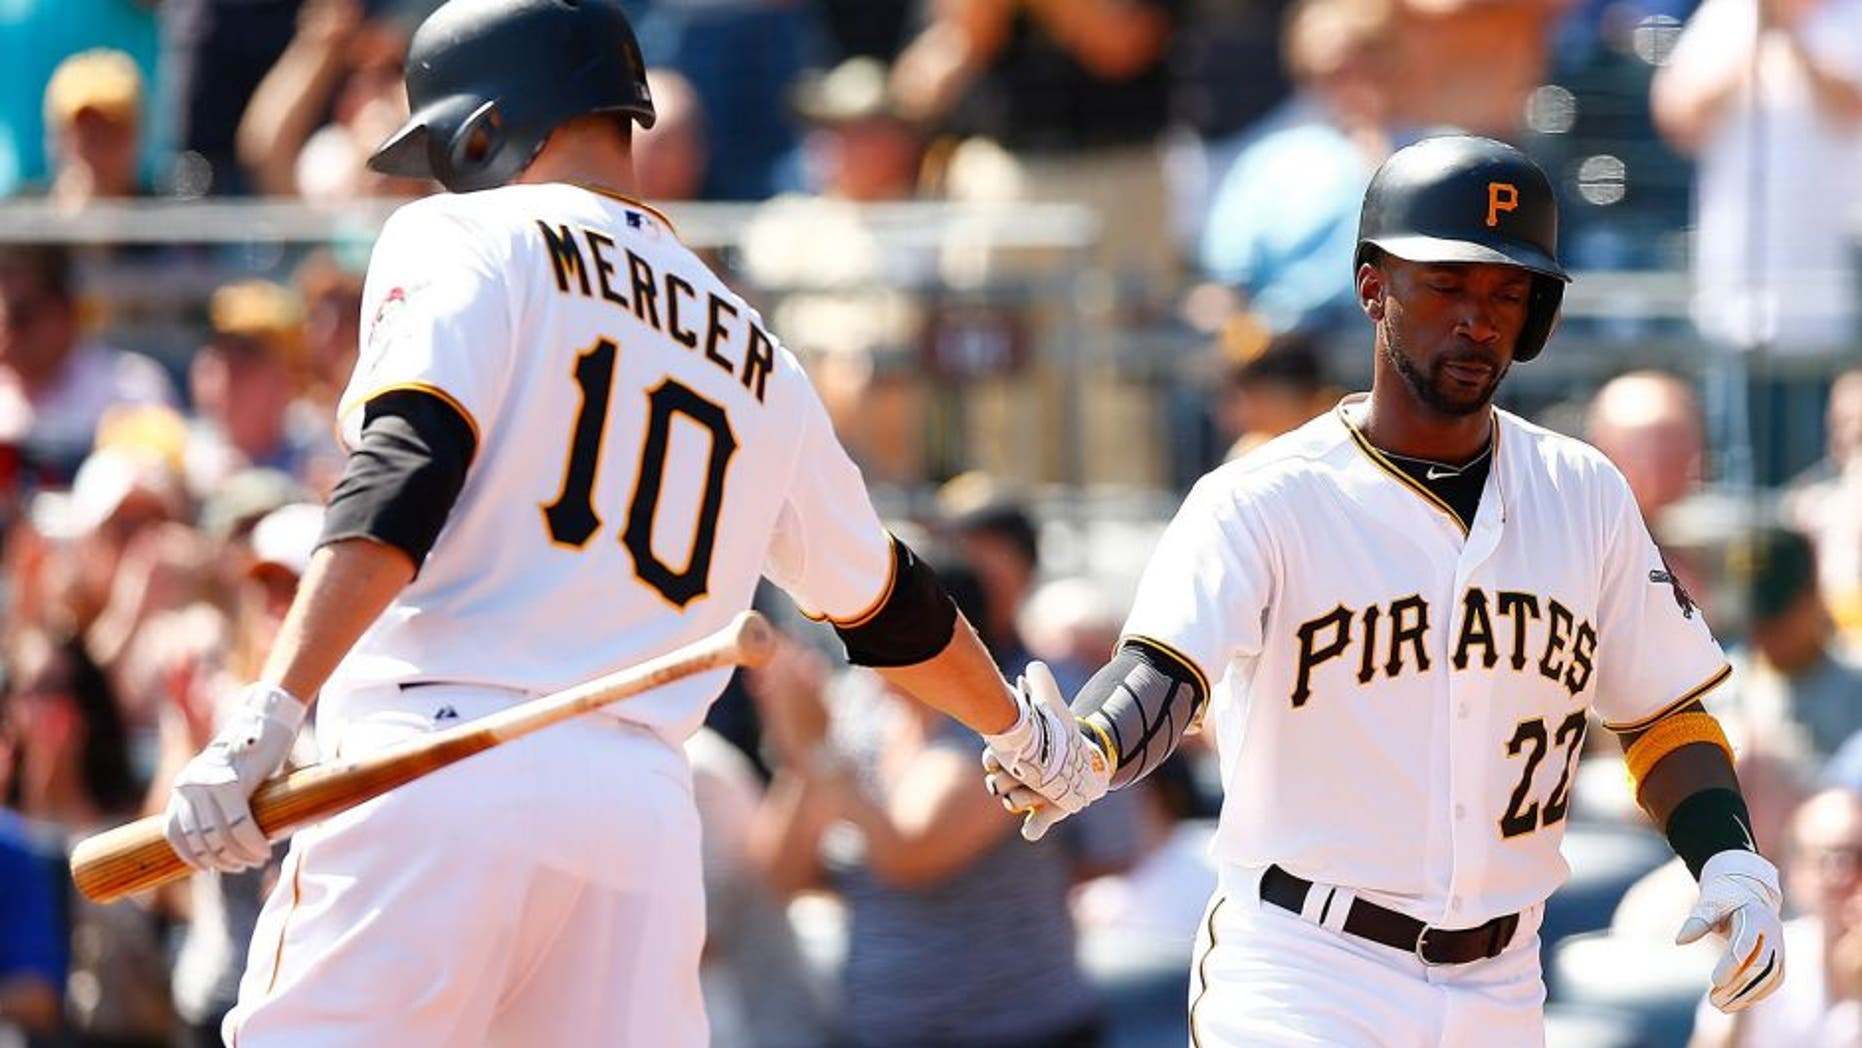 PITTSBURGH, PA - SEPTEMBER 15: Andrew McCutchen #22 of the Pittsburgh Pirates is congratulated by teammate Jordy Mercer #10 after scoring in the first inning against the Chicago Cubs during game one of the doubleheader at PNC Park on September 15, 2015 in Pittsburgh, Pennsylvania. (Photo by Jared Wickerham/Getty Images)